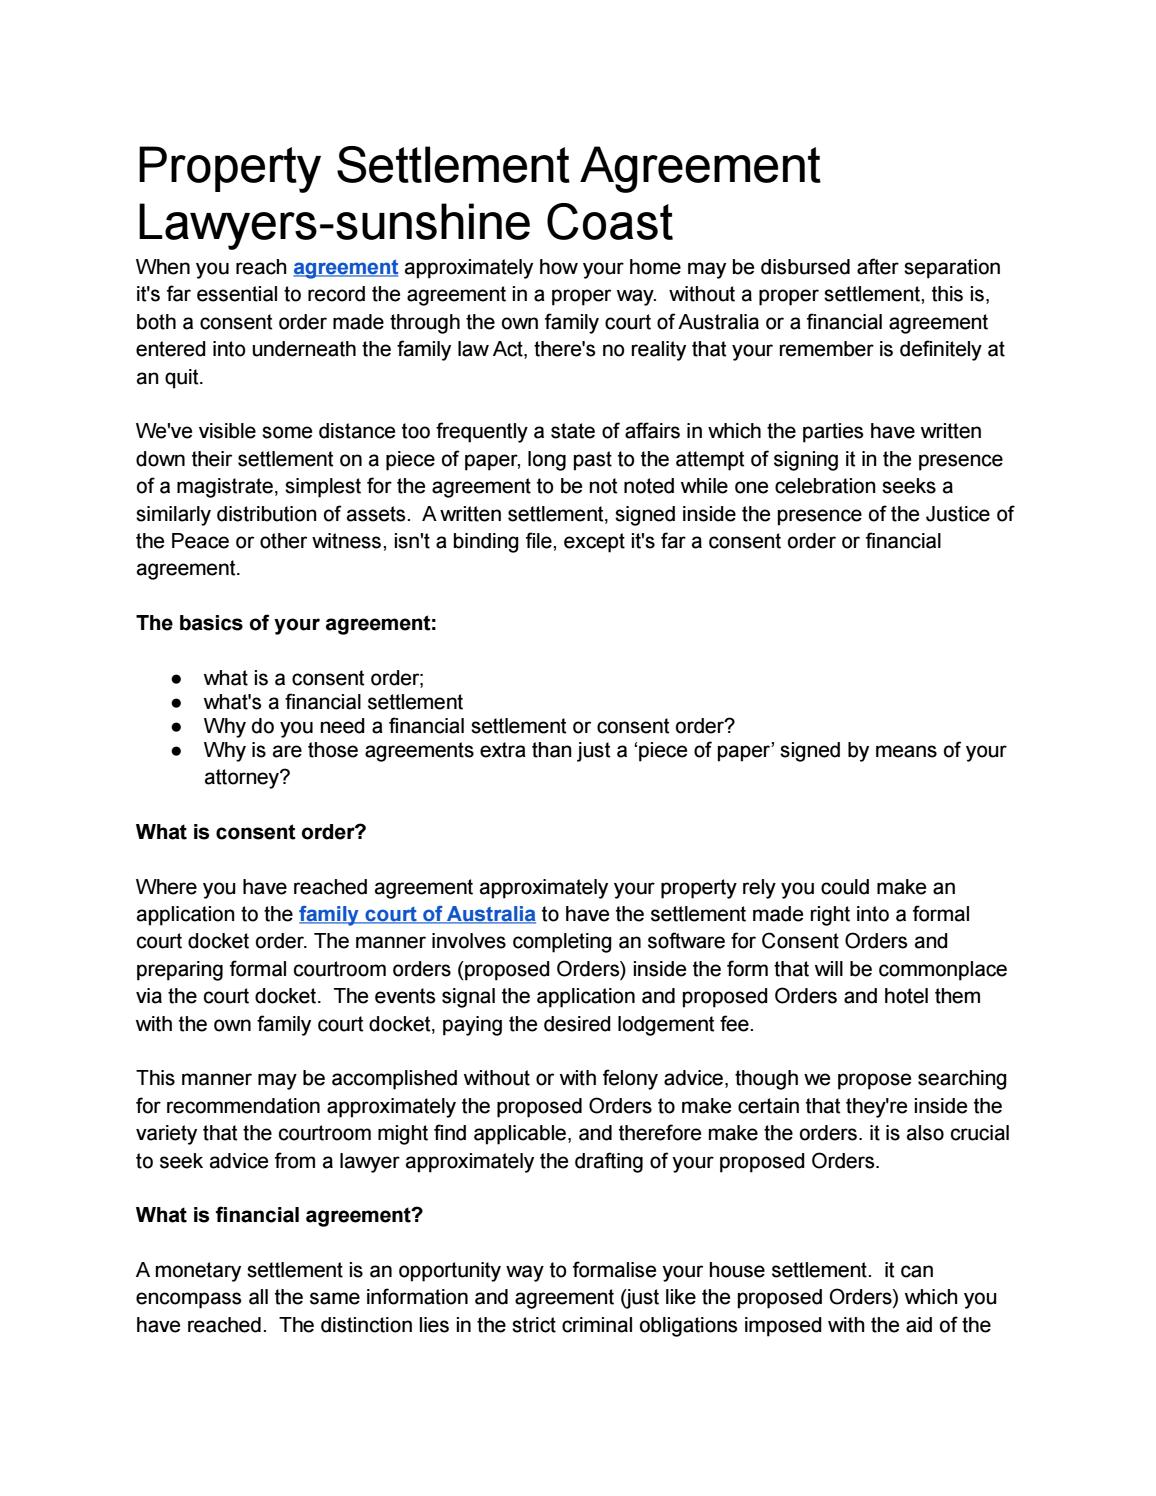 Property Settlement Agreement Lawyers Sunshine Coast By Baker